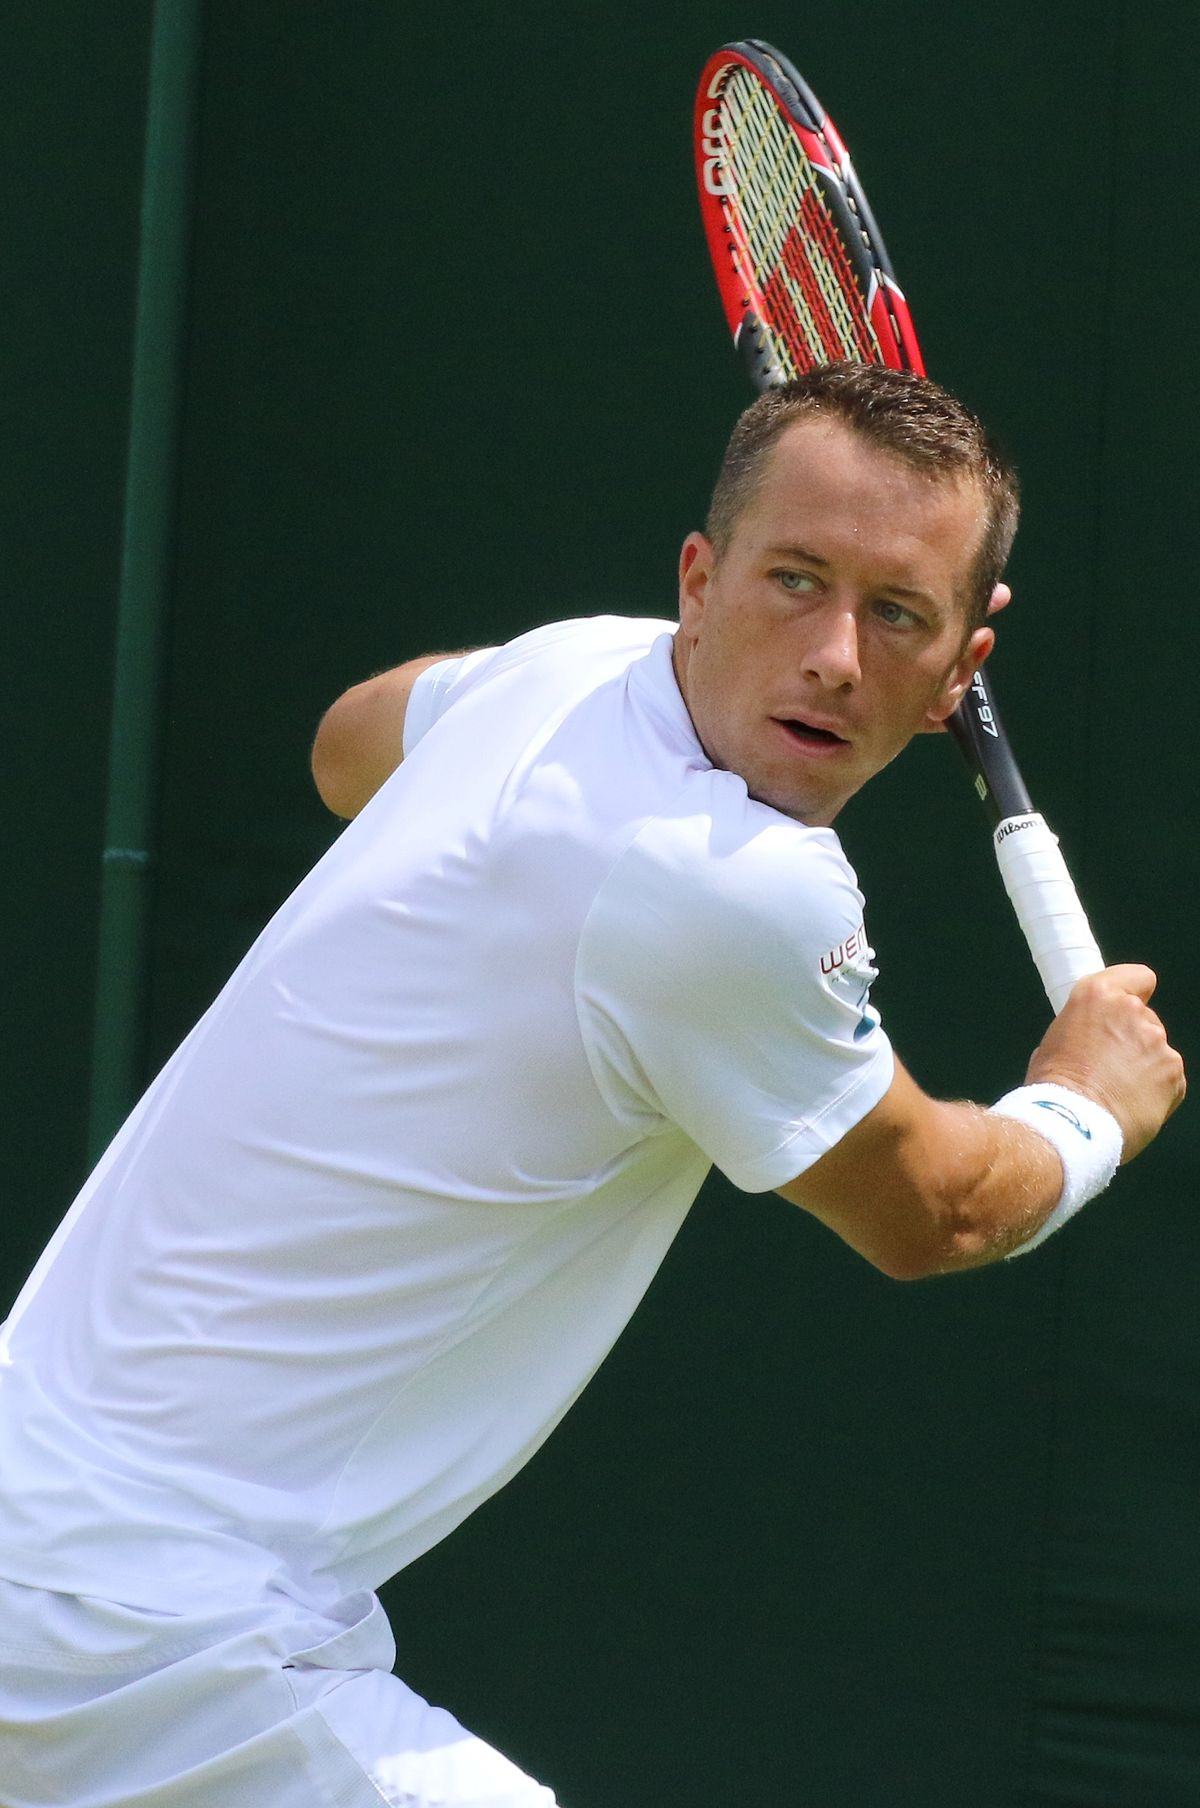 singles in philipp Philipp oswald is our featured player for september on the itf pro circuit who was oswald's only non-italian singles opponent in his opening two tournaments.